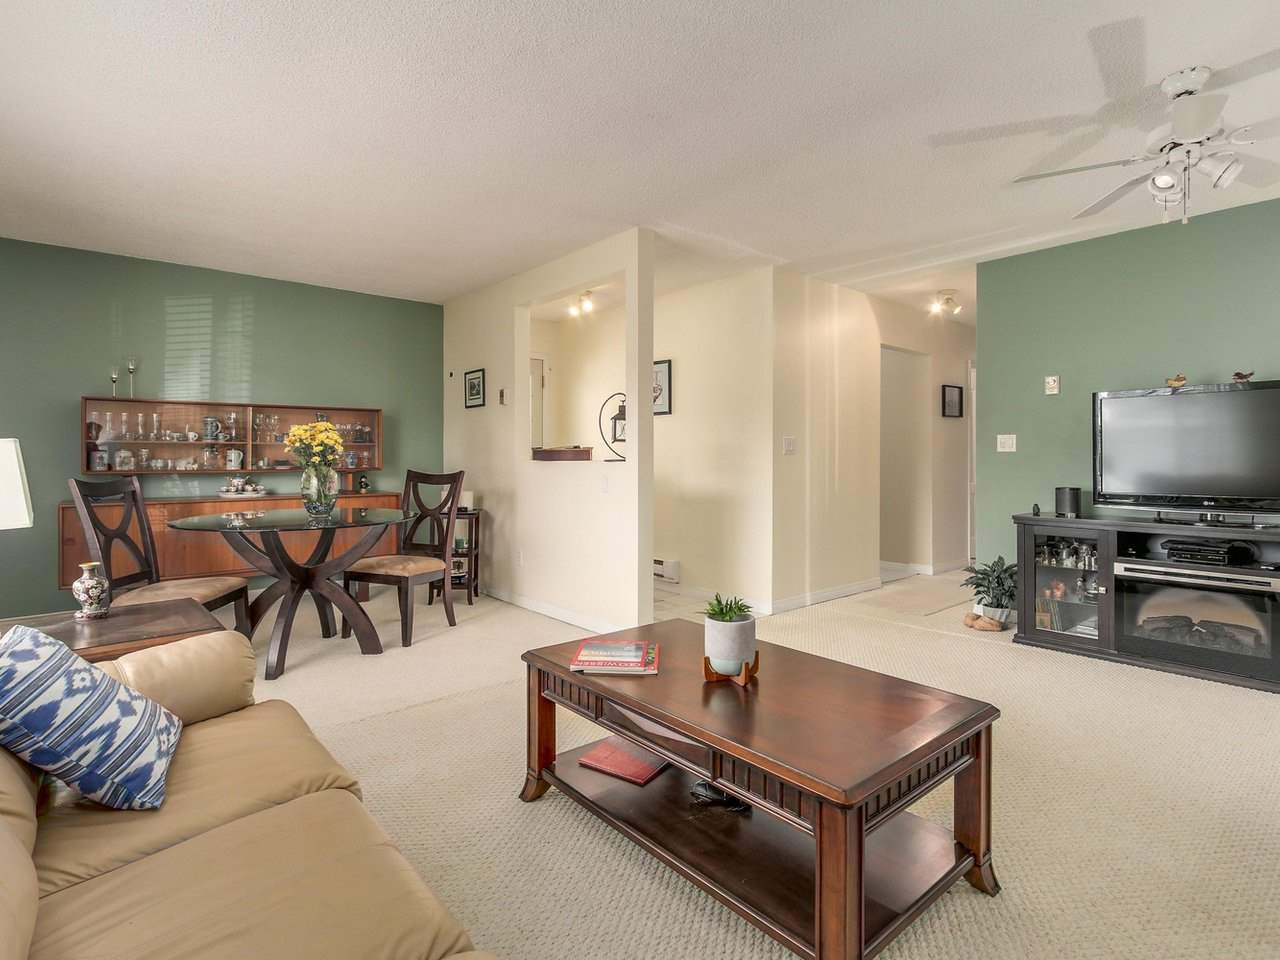 """Photo 4: Photos: 10550 HOLLYMOUNT Drive in Richmond: Steveston North House for sale in """"HOLLIES"""" : MLS®# R2366603"""